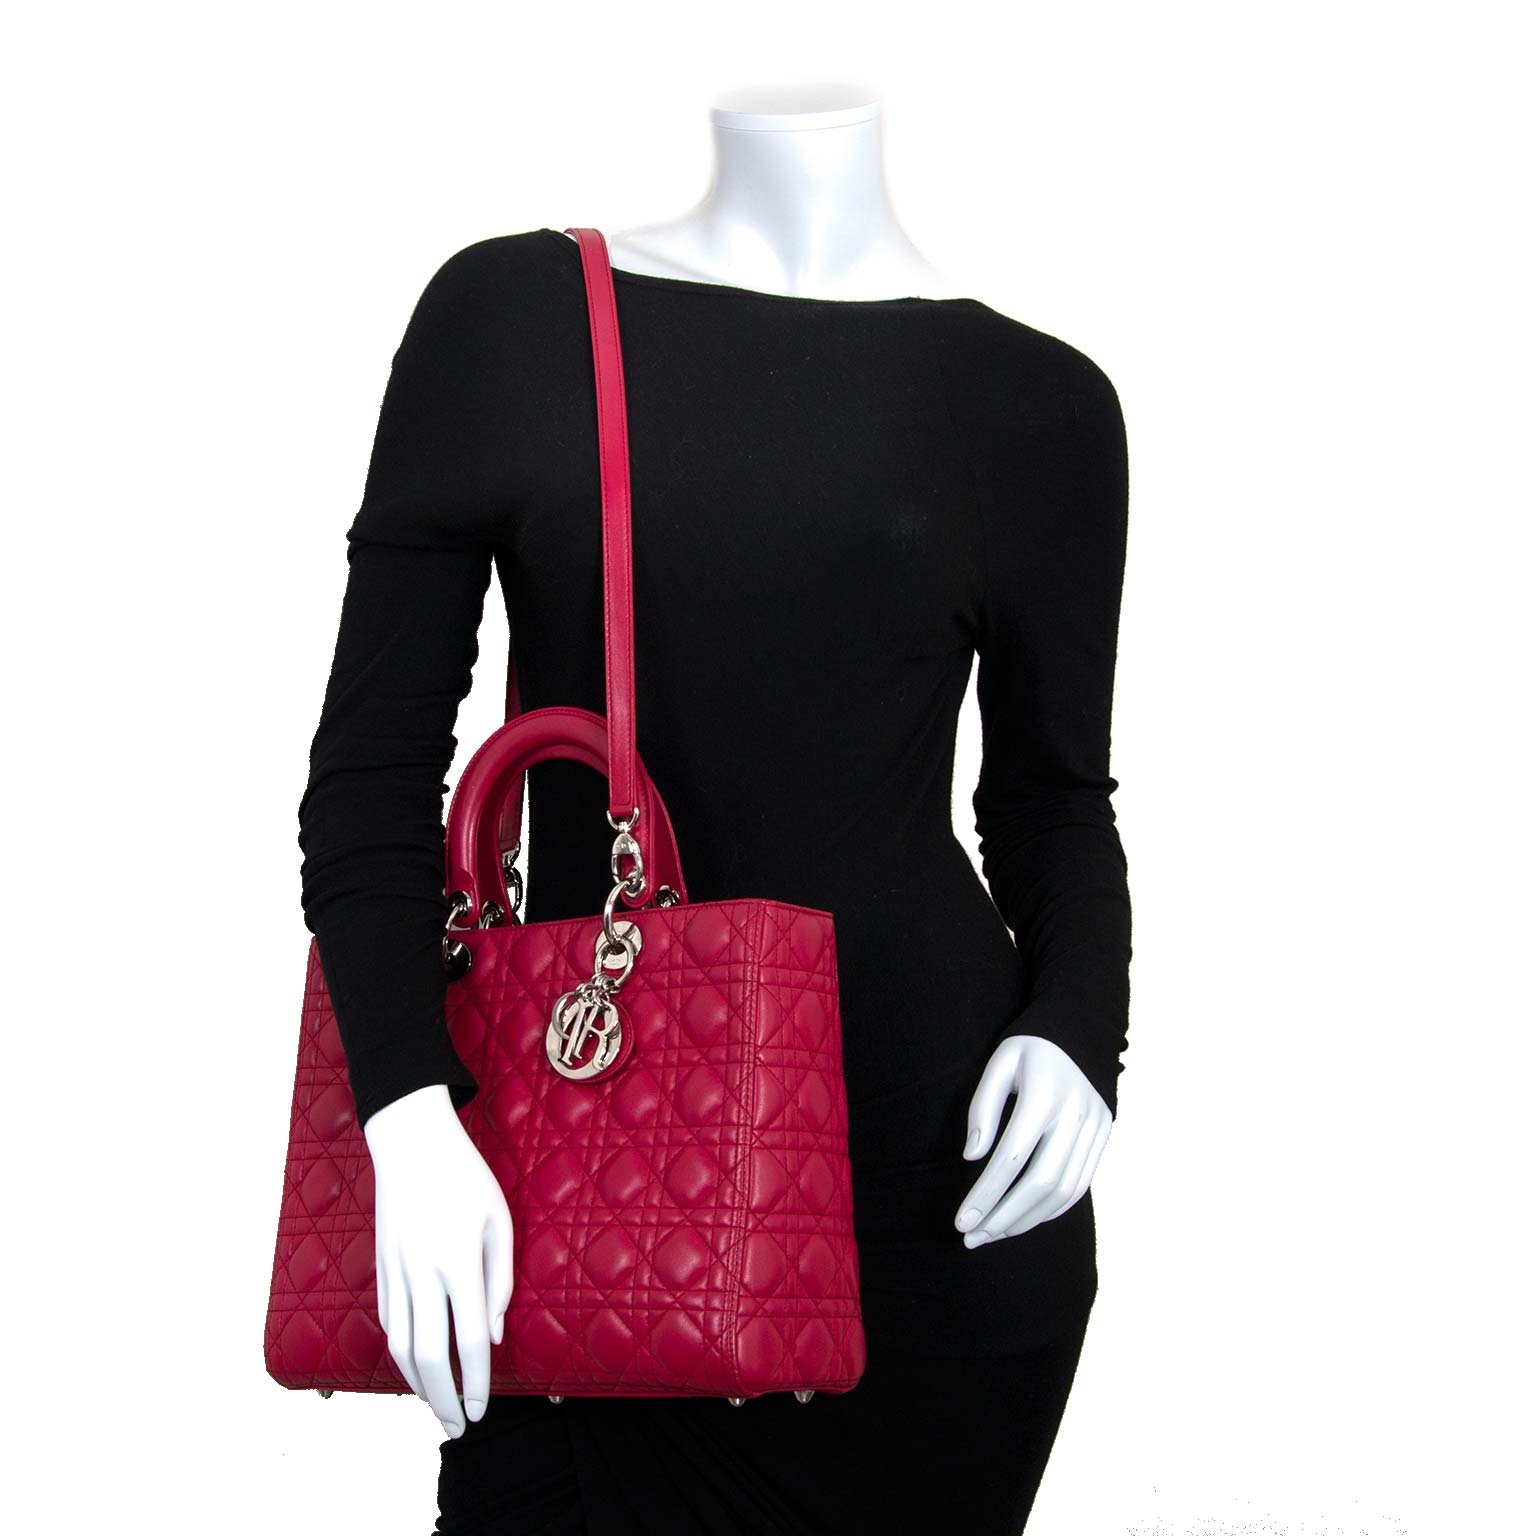 christian dior lady dior red lambskin bag now for sale at labellov vintage fashion webshop belgium